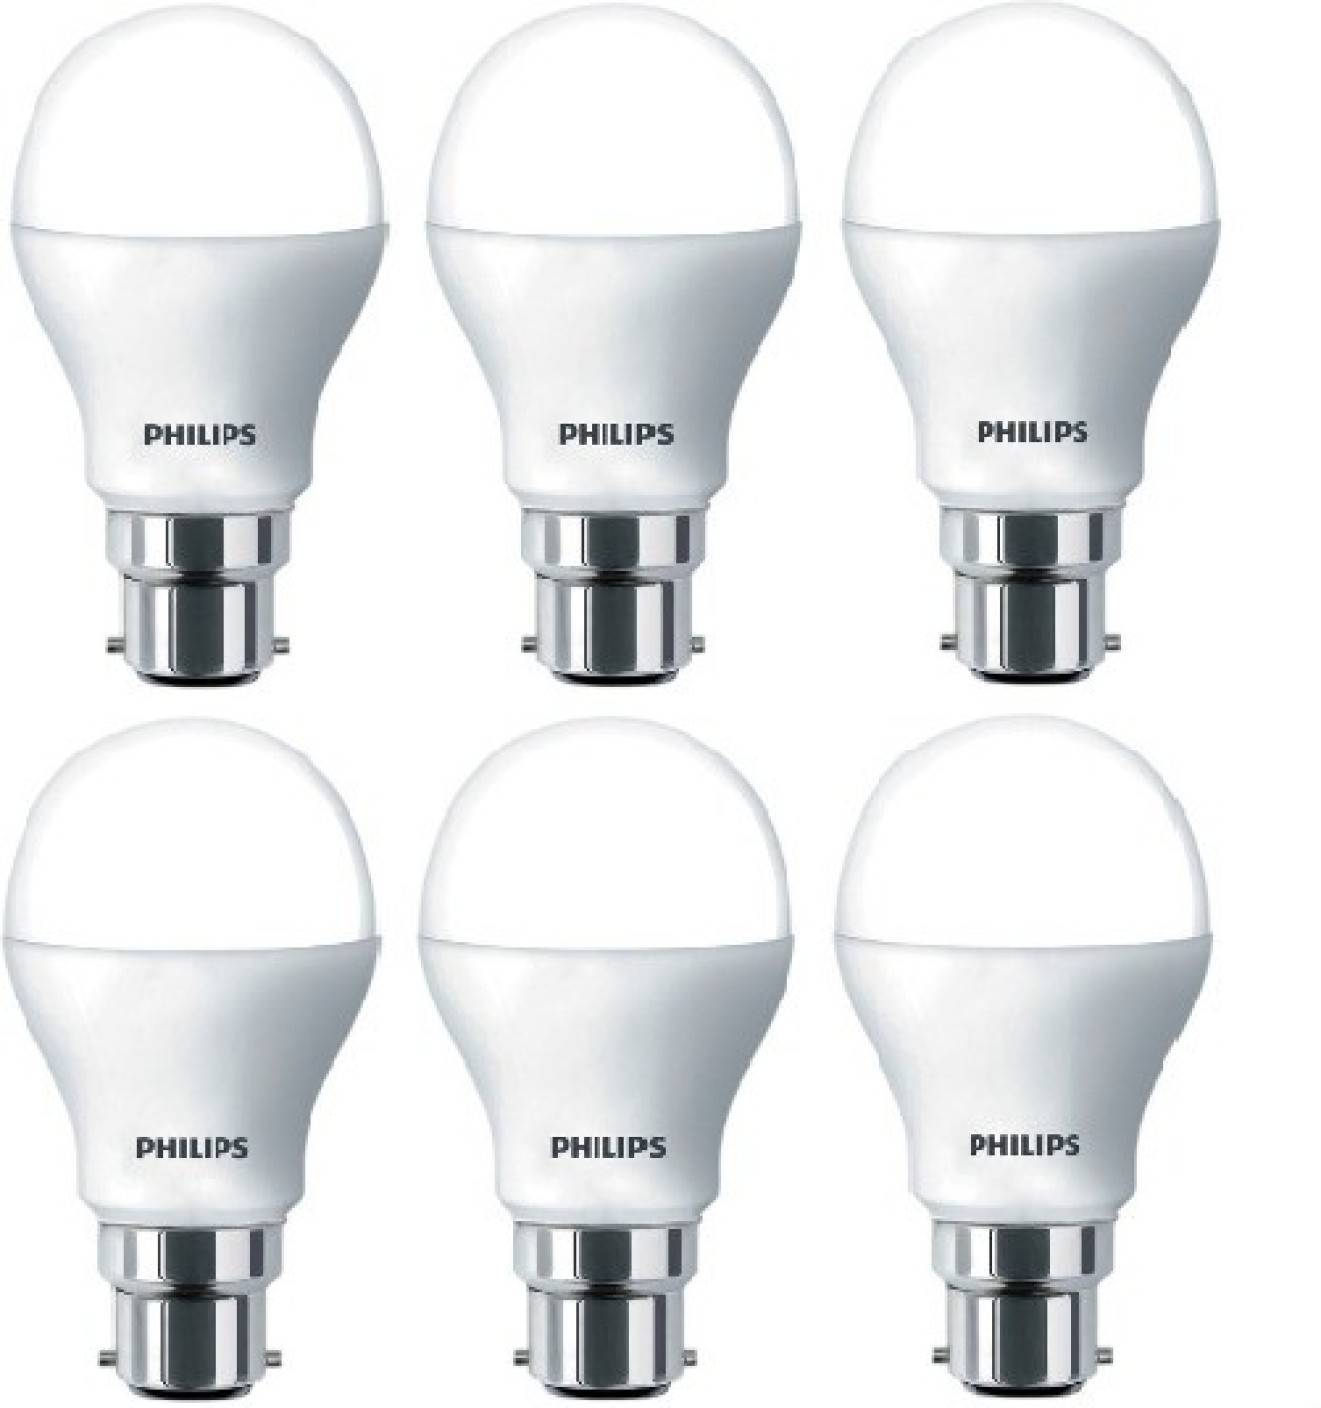 Philips 9 W B22 Led Bulb Price In India Buy Philips 9 W B22 Led Bulb Online At